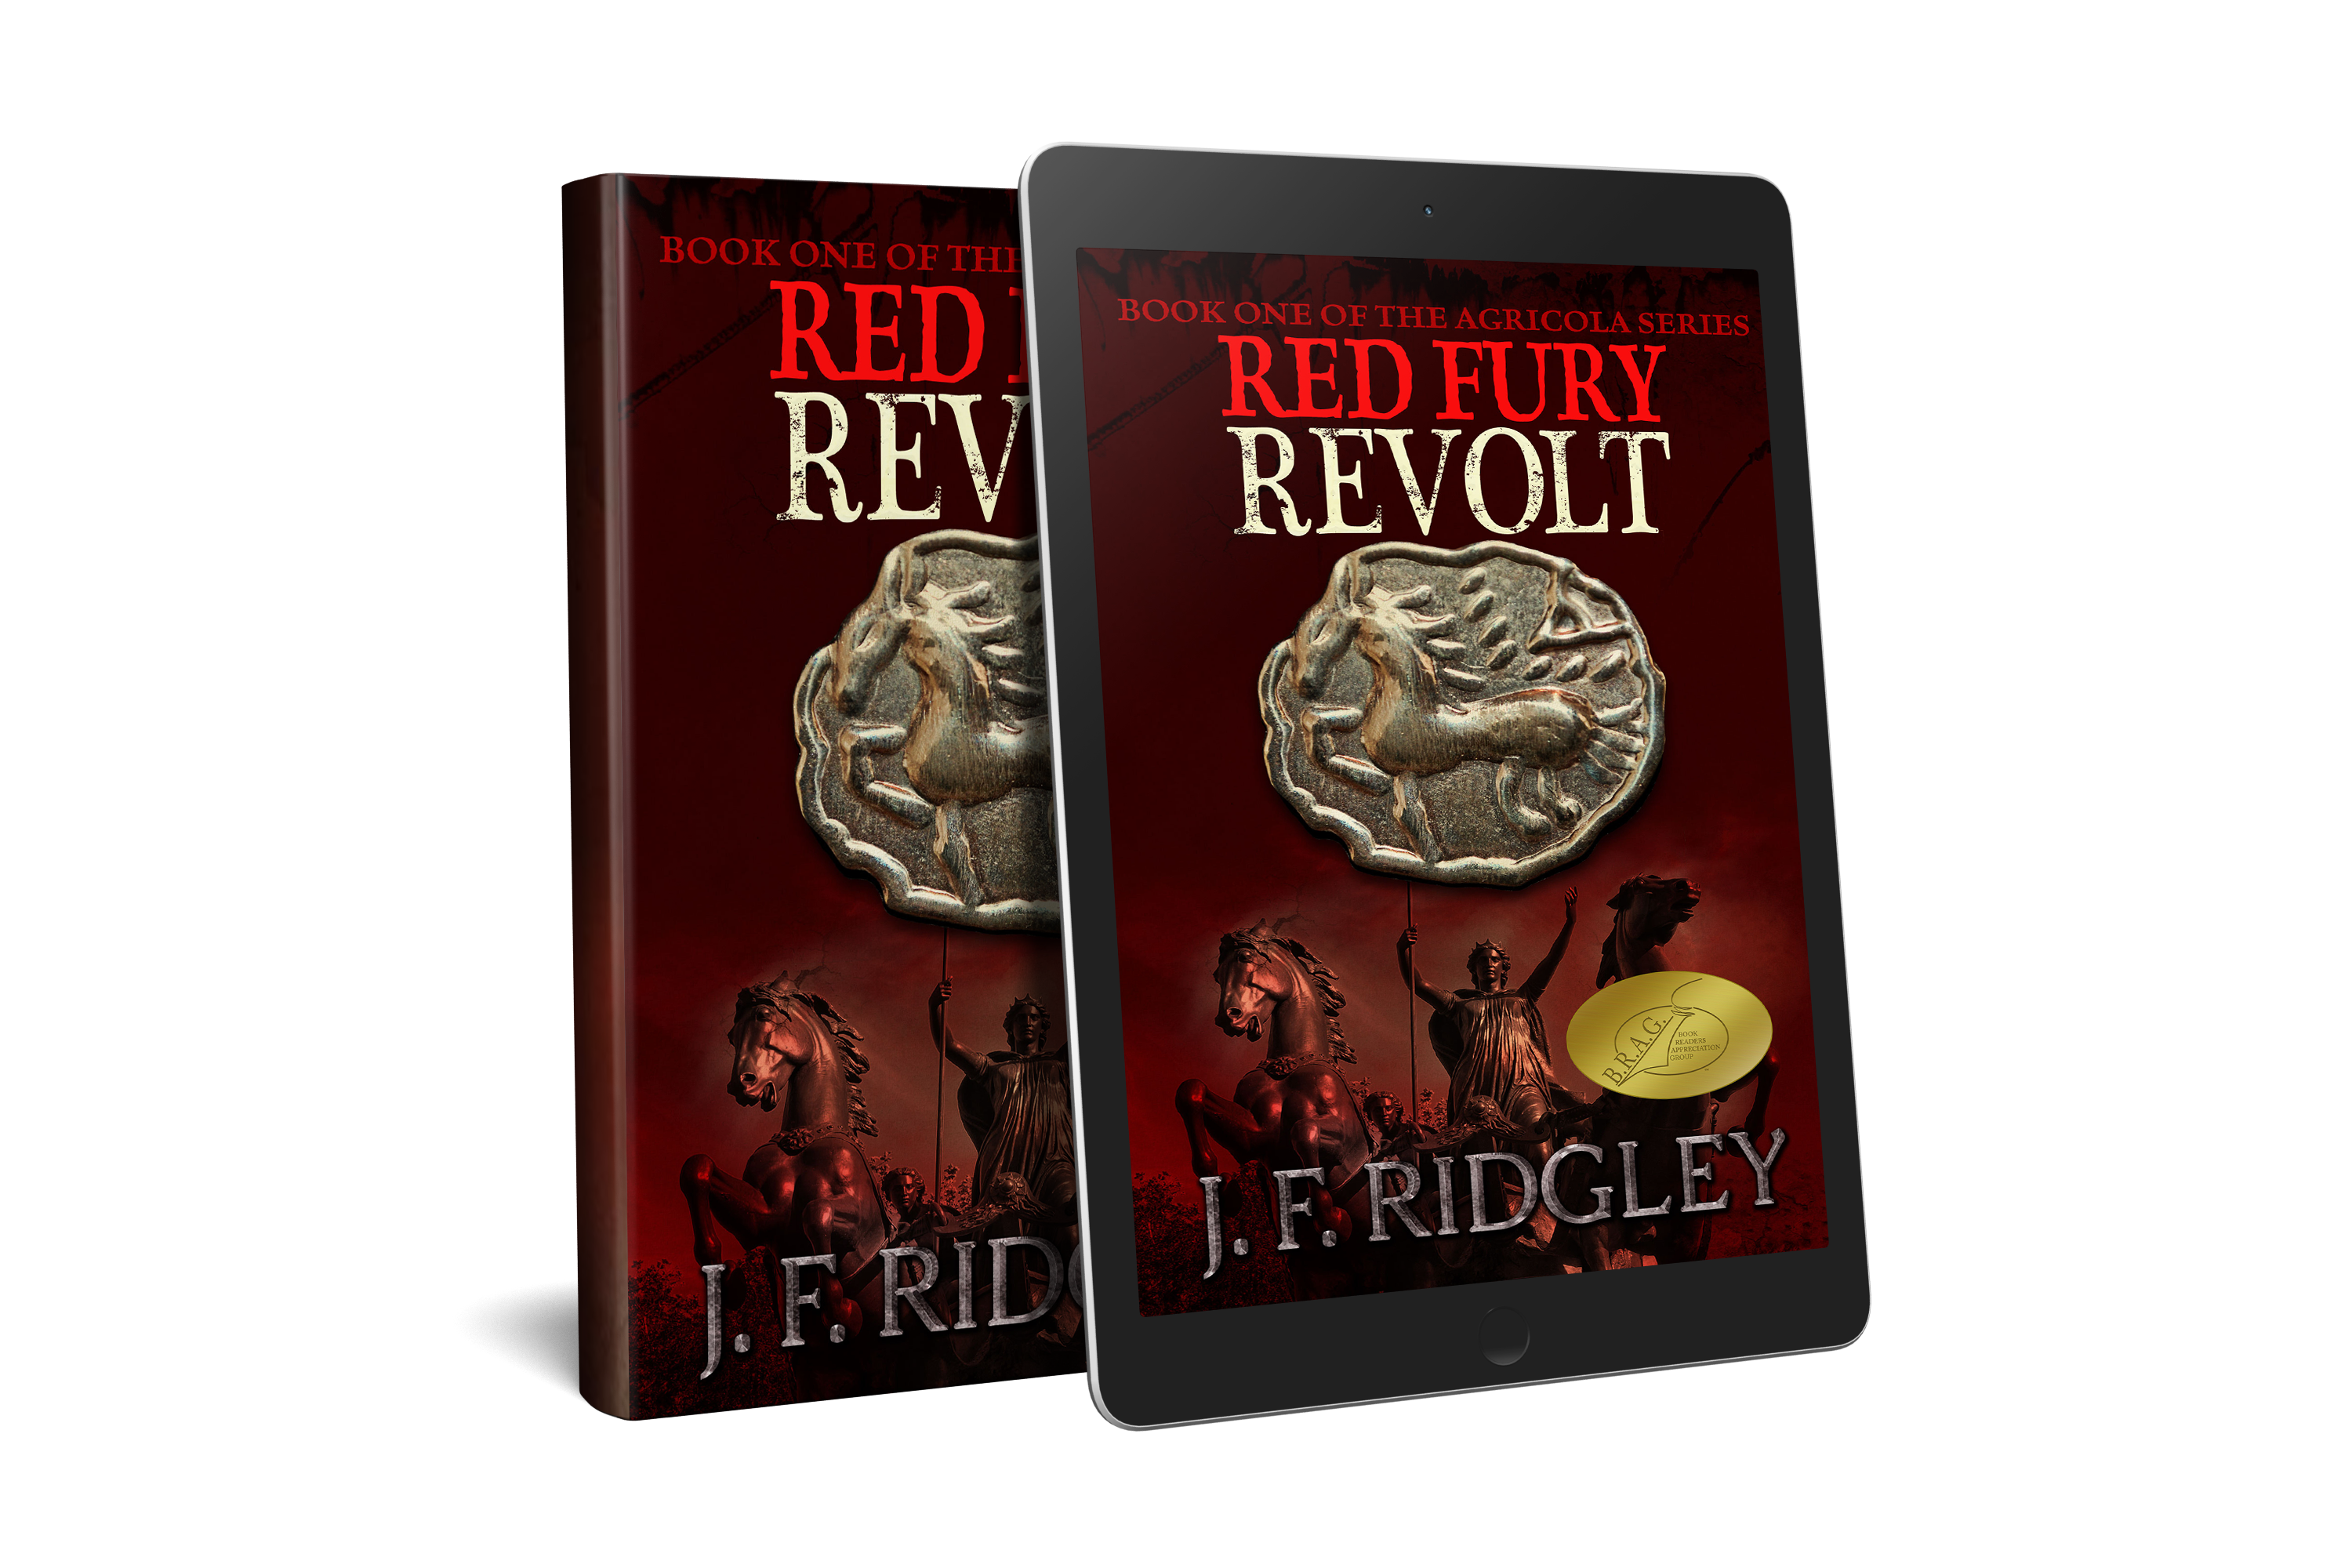 Red Fury Revolt by JF Ridgley